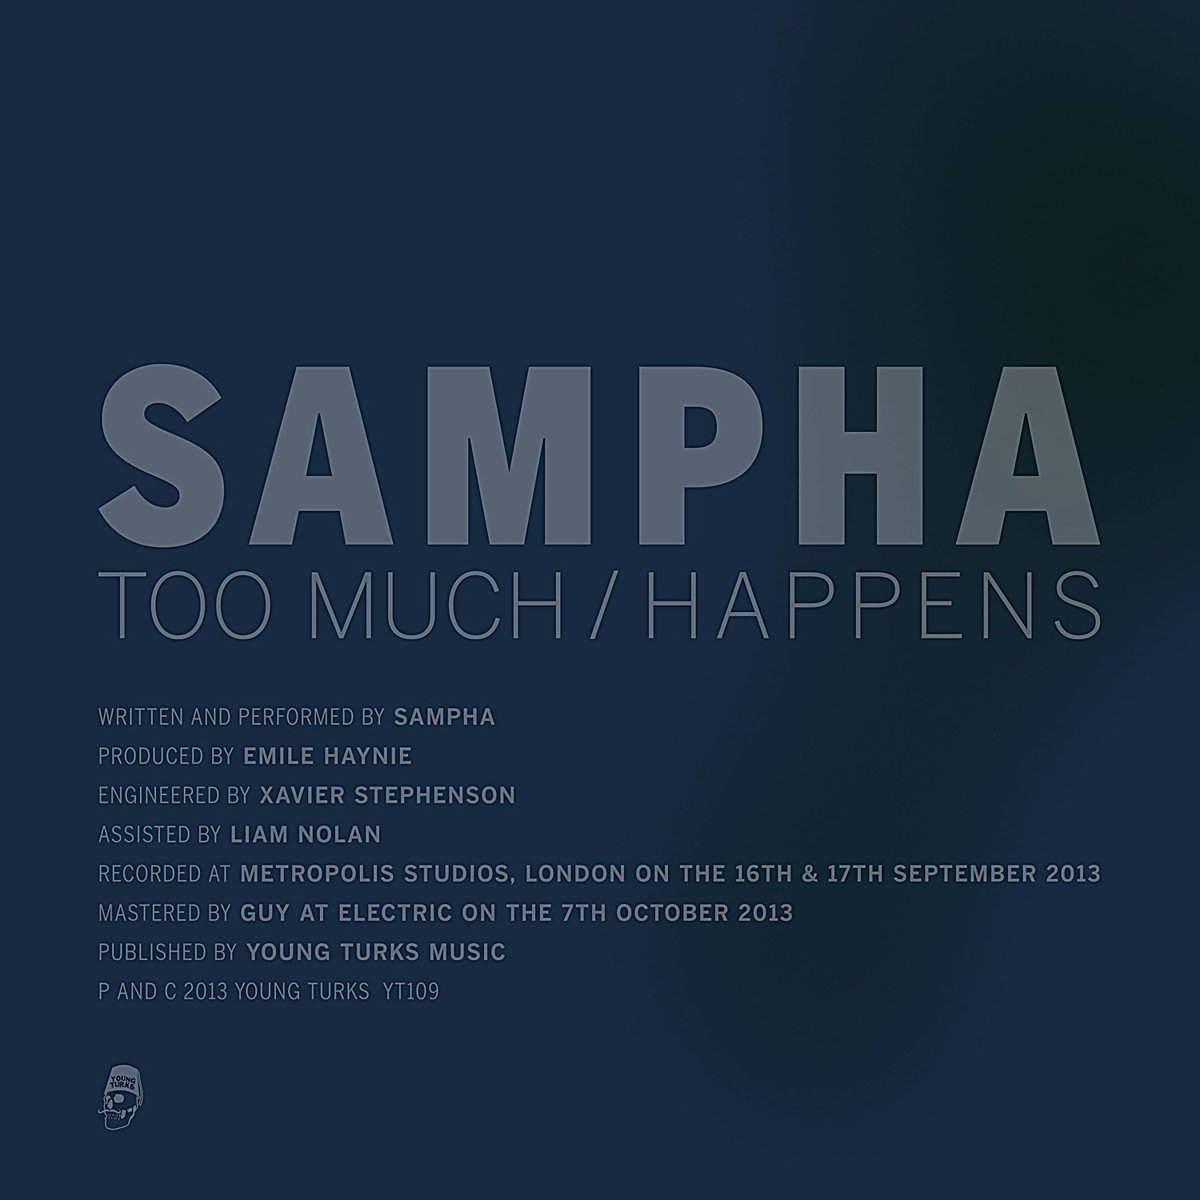 Sampha - Too Much